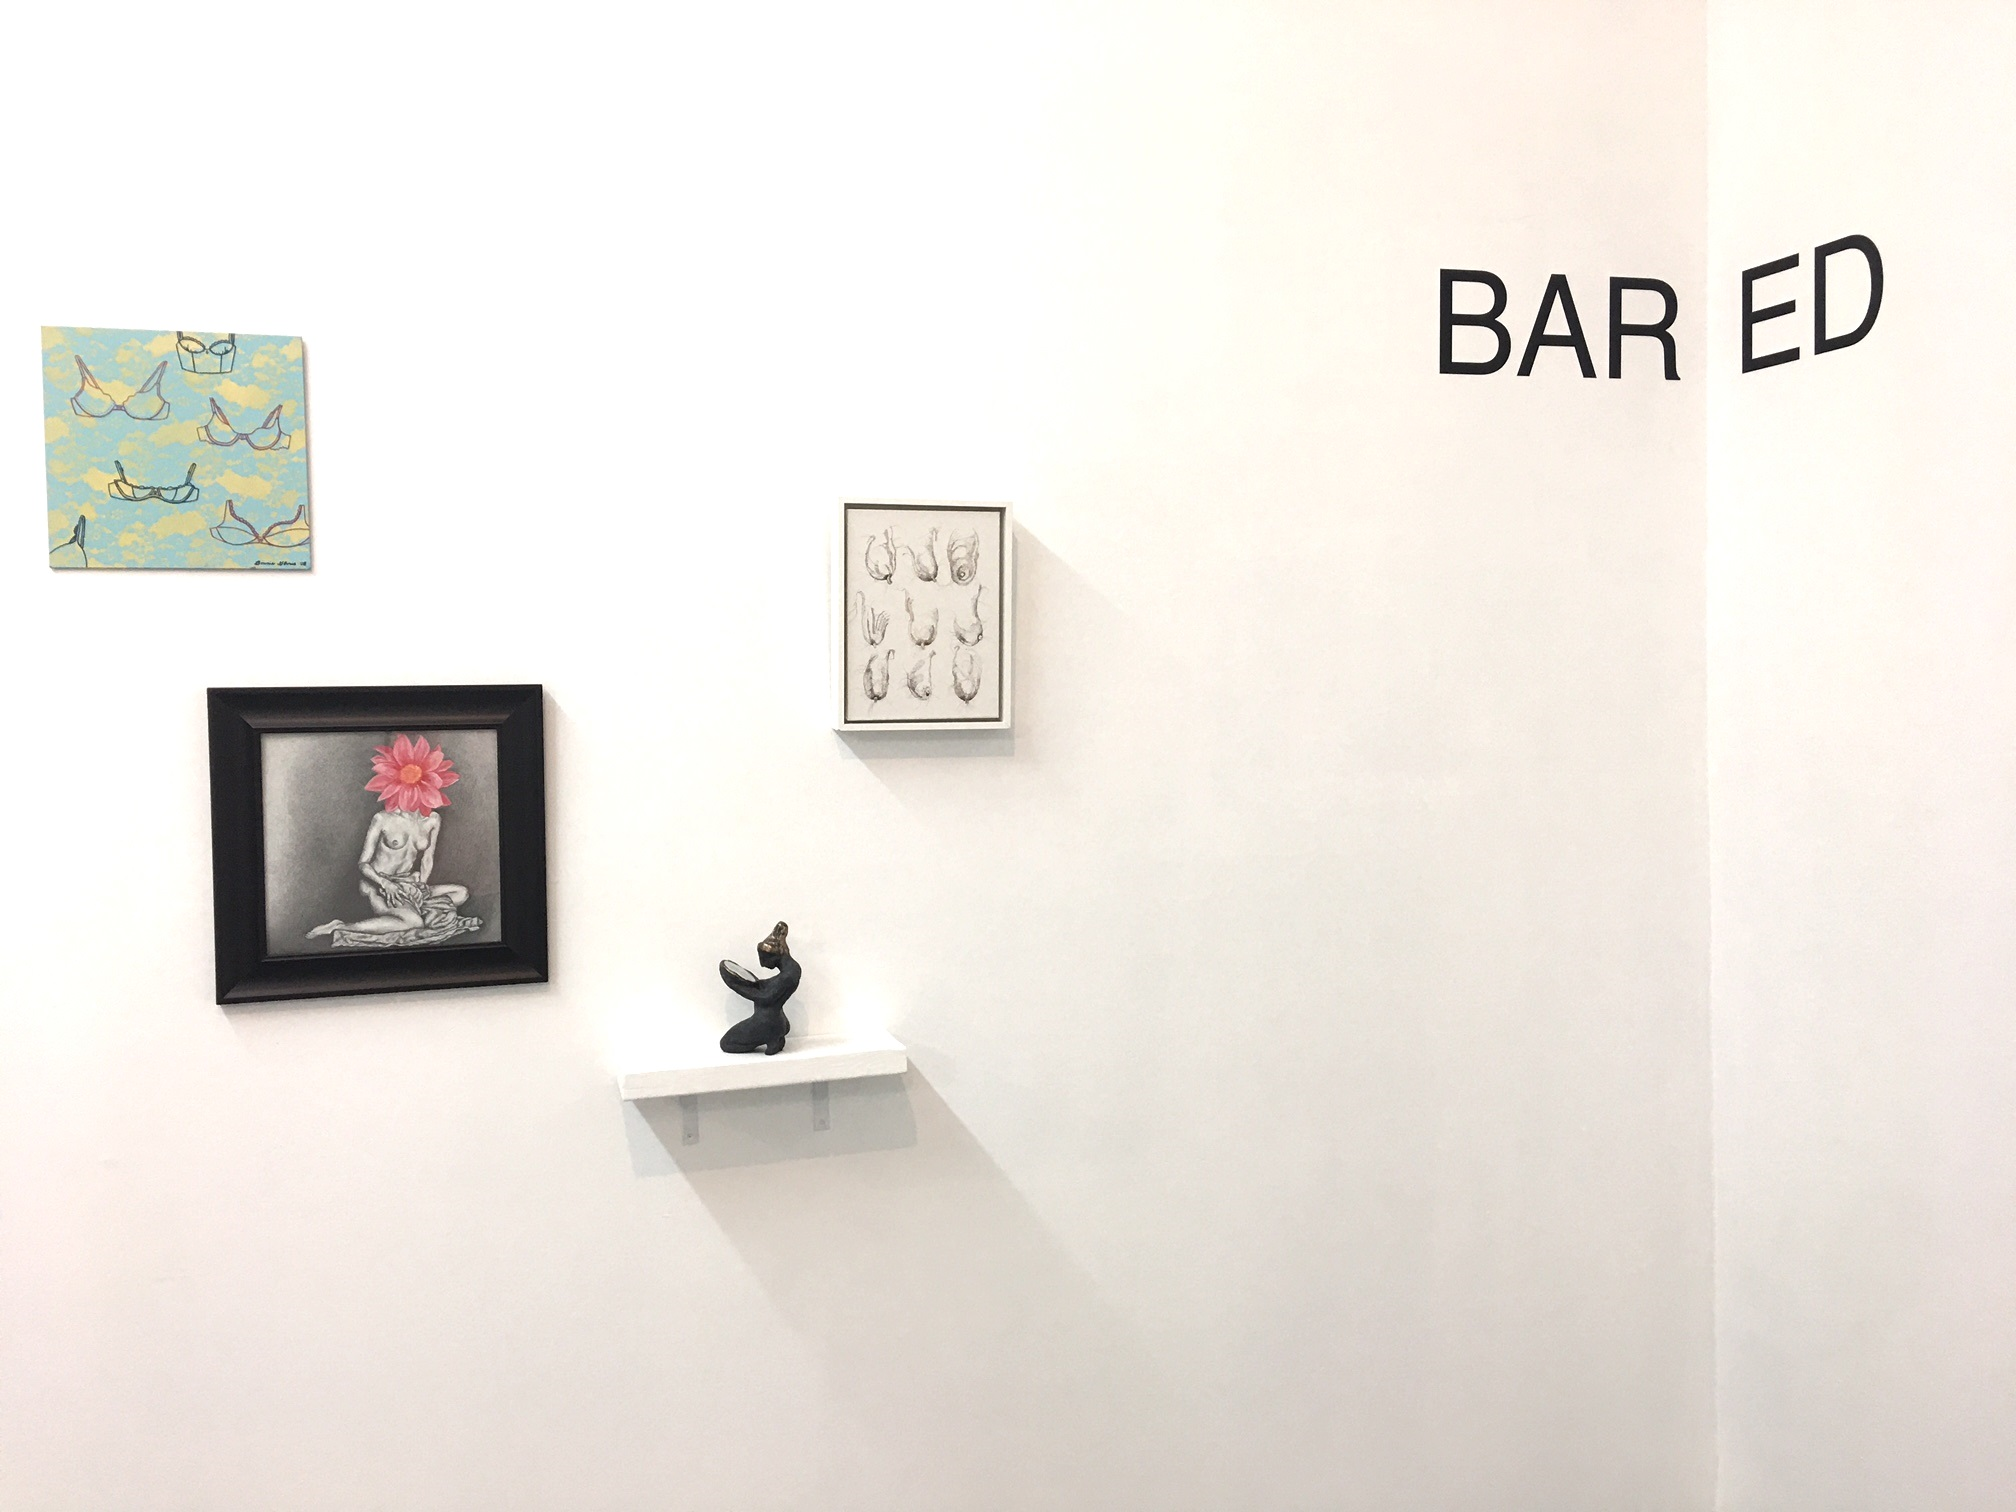 BARED, belgin yucelen sculpture, group exhibition at the Ground Floor Gallery Nashville Tennessee 1